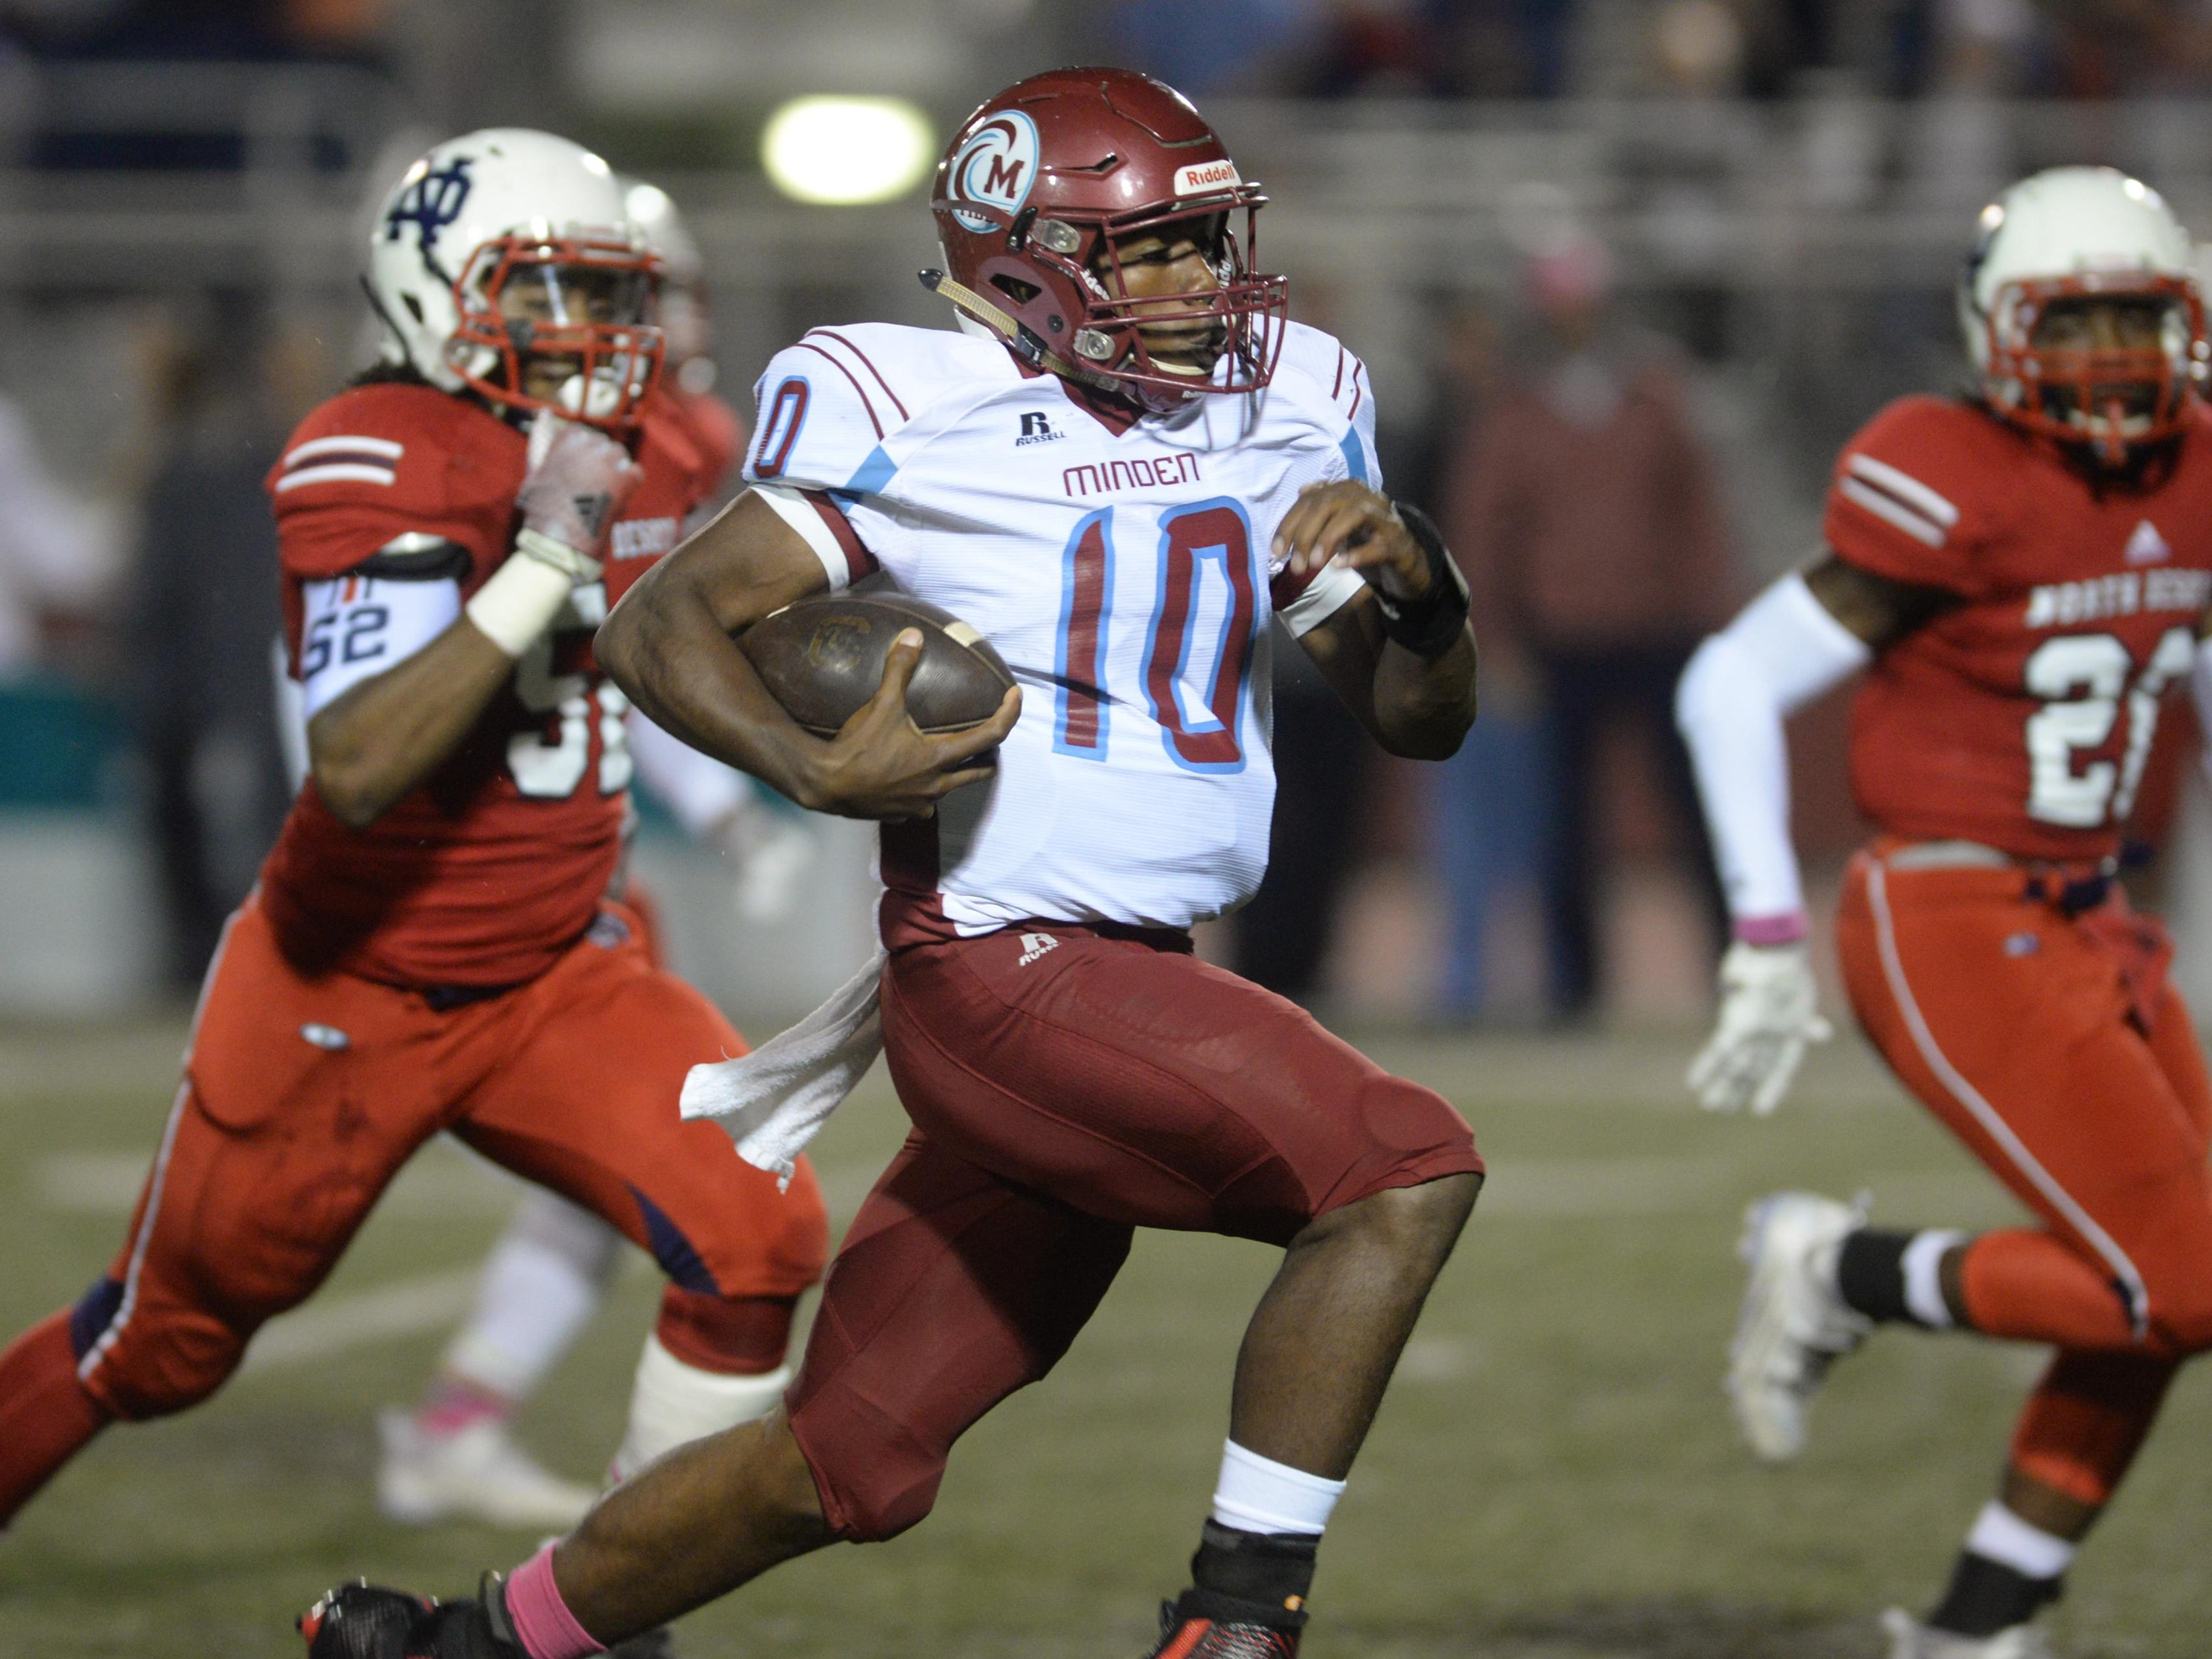 Minden quarterback Antonio Rivette sprints down the middle of the field for a touchdown as North DeSoto takes on Minden.